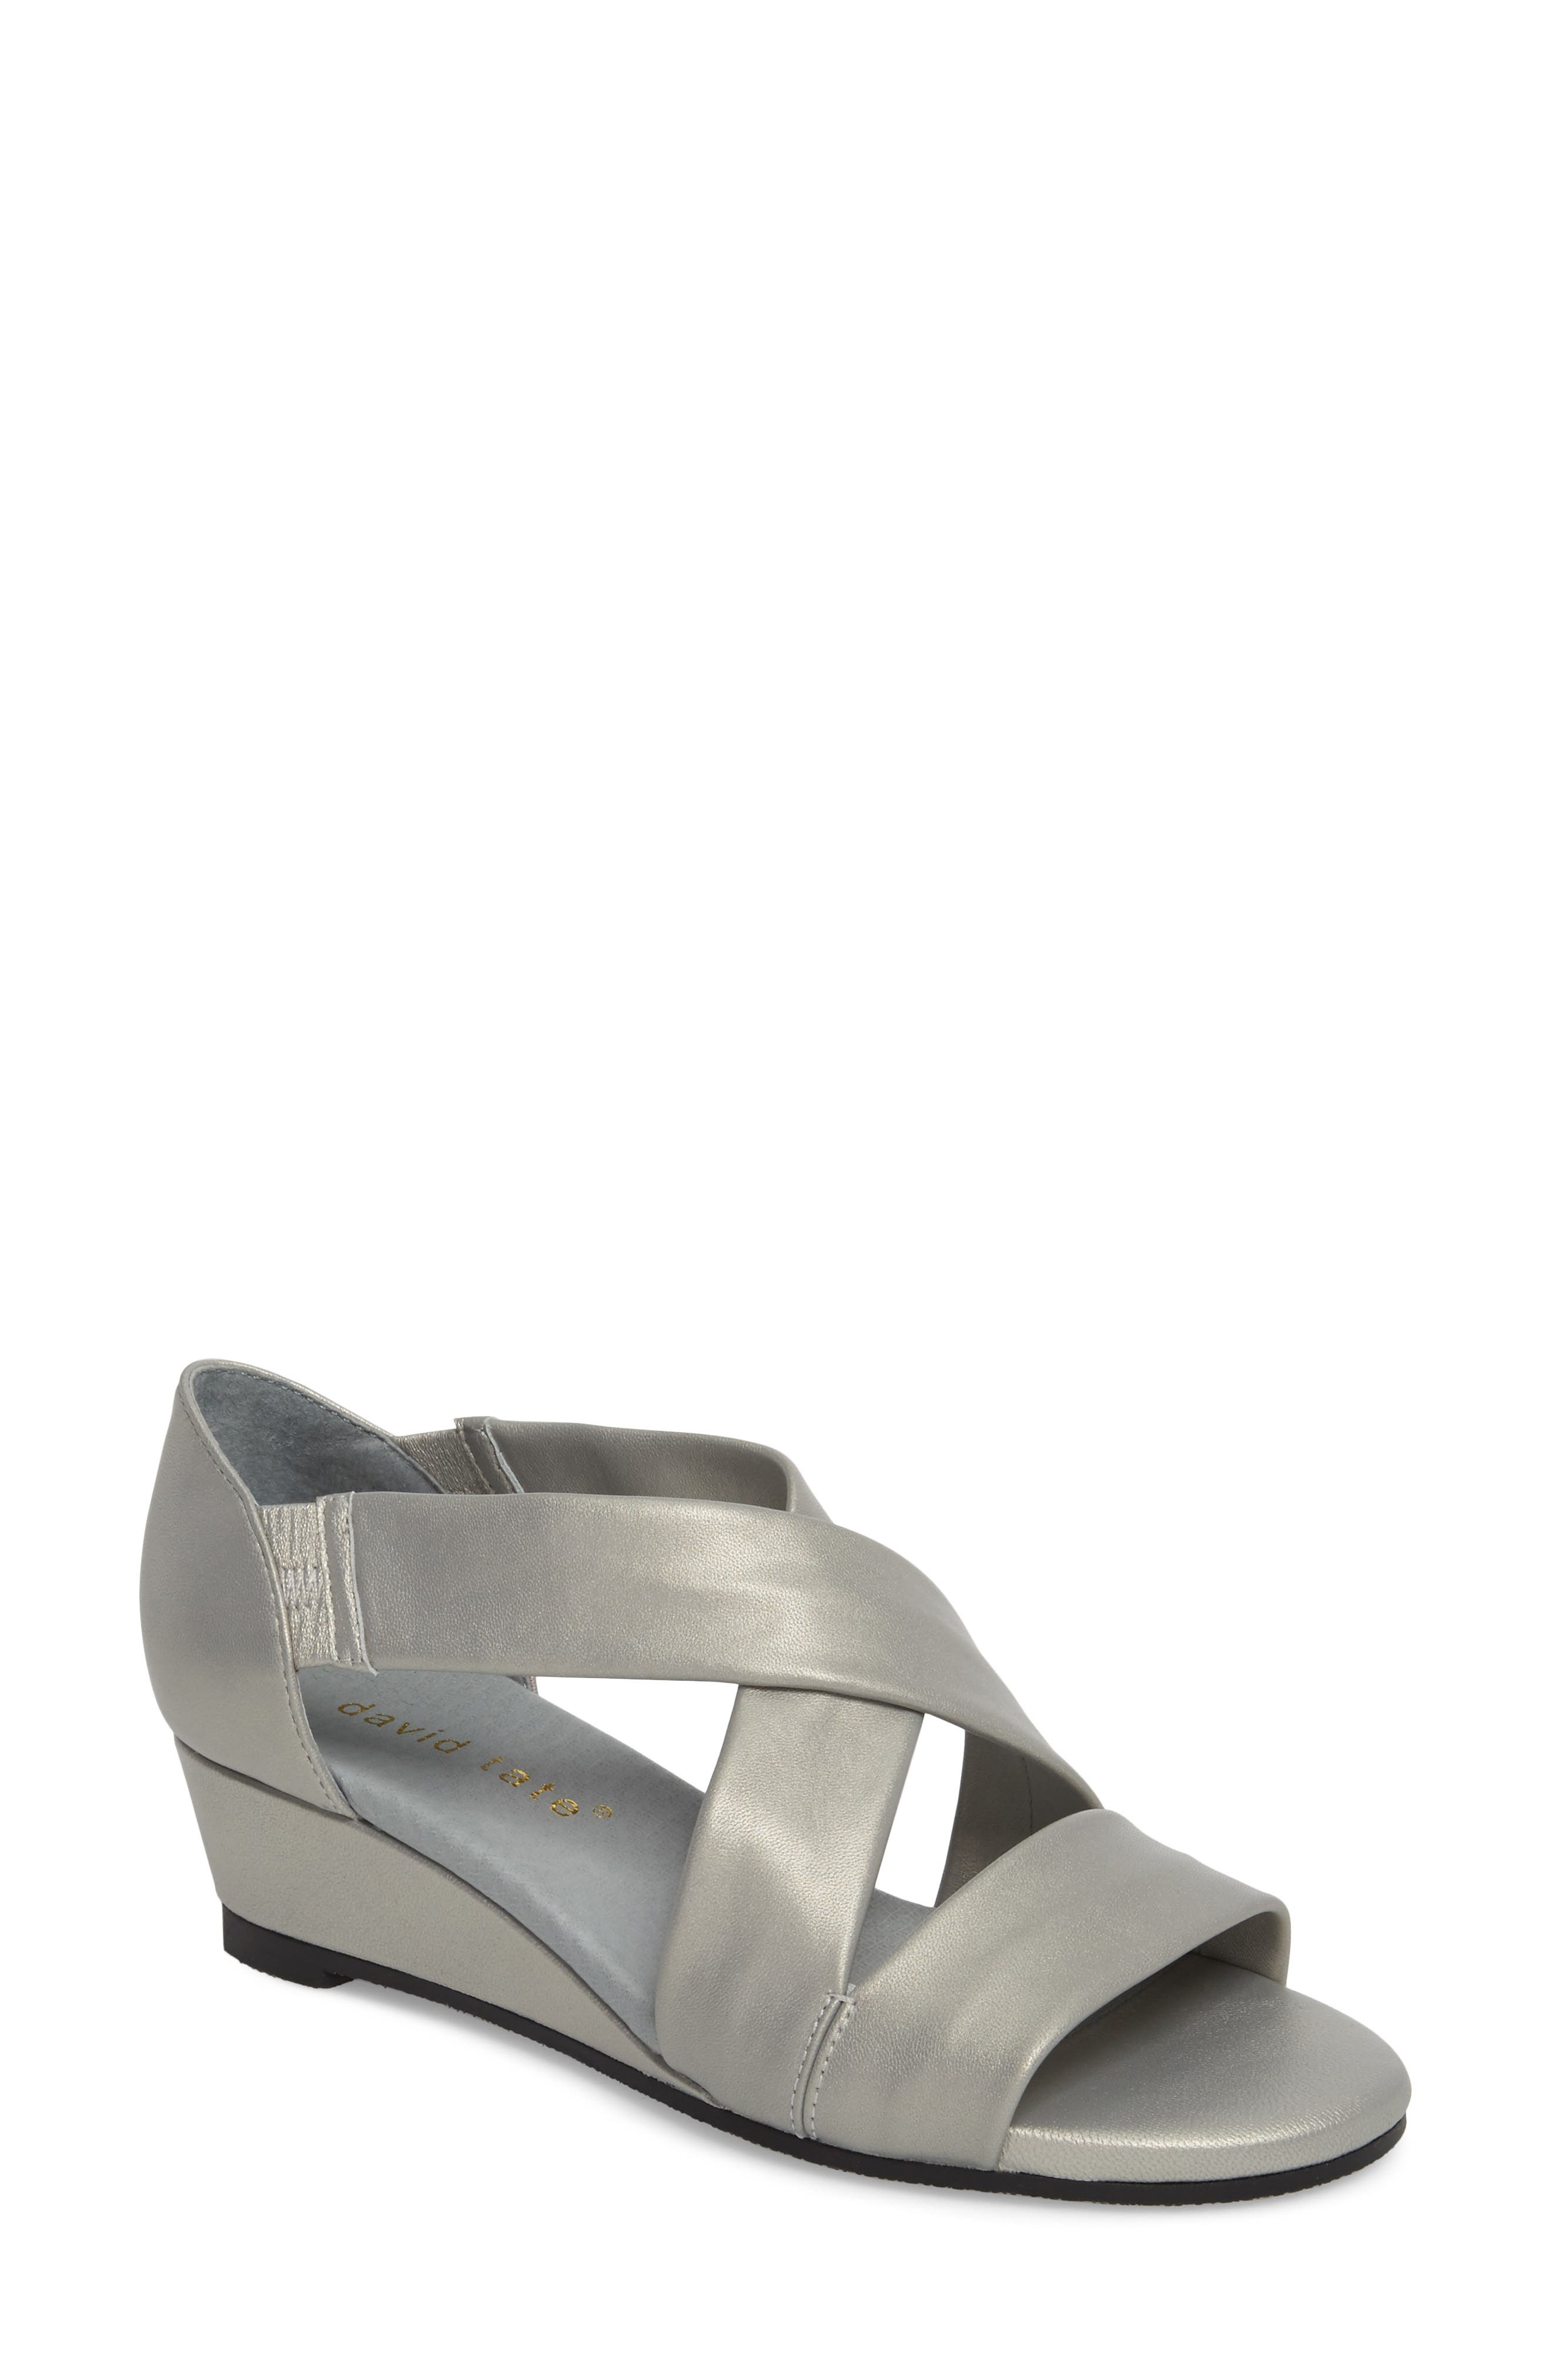 DAVID TATE, Swell Cross Strap Wedge Sandal, Main thumbnail 1, color, SILVER LEATHER